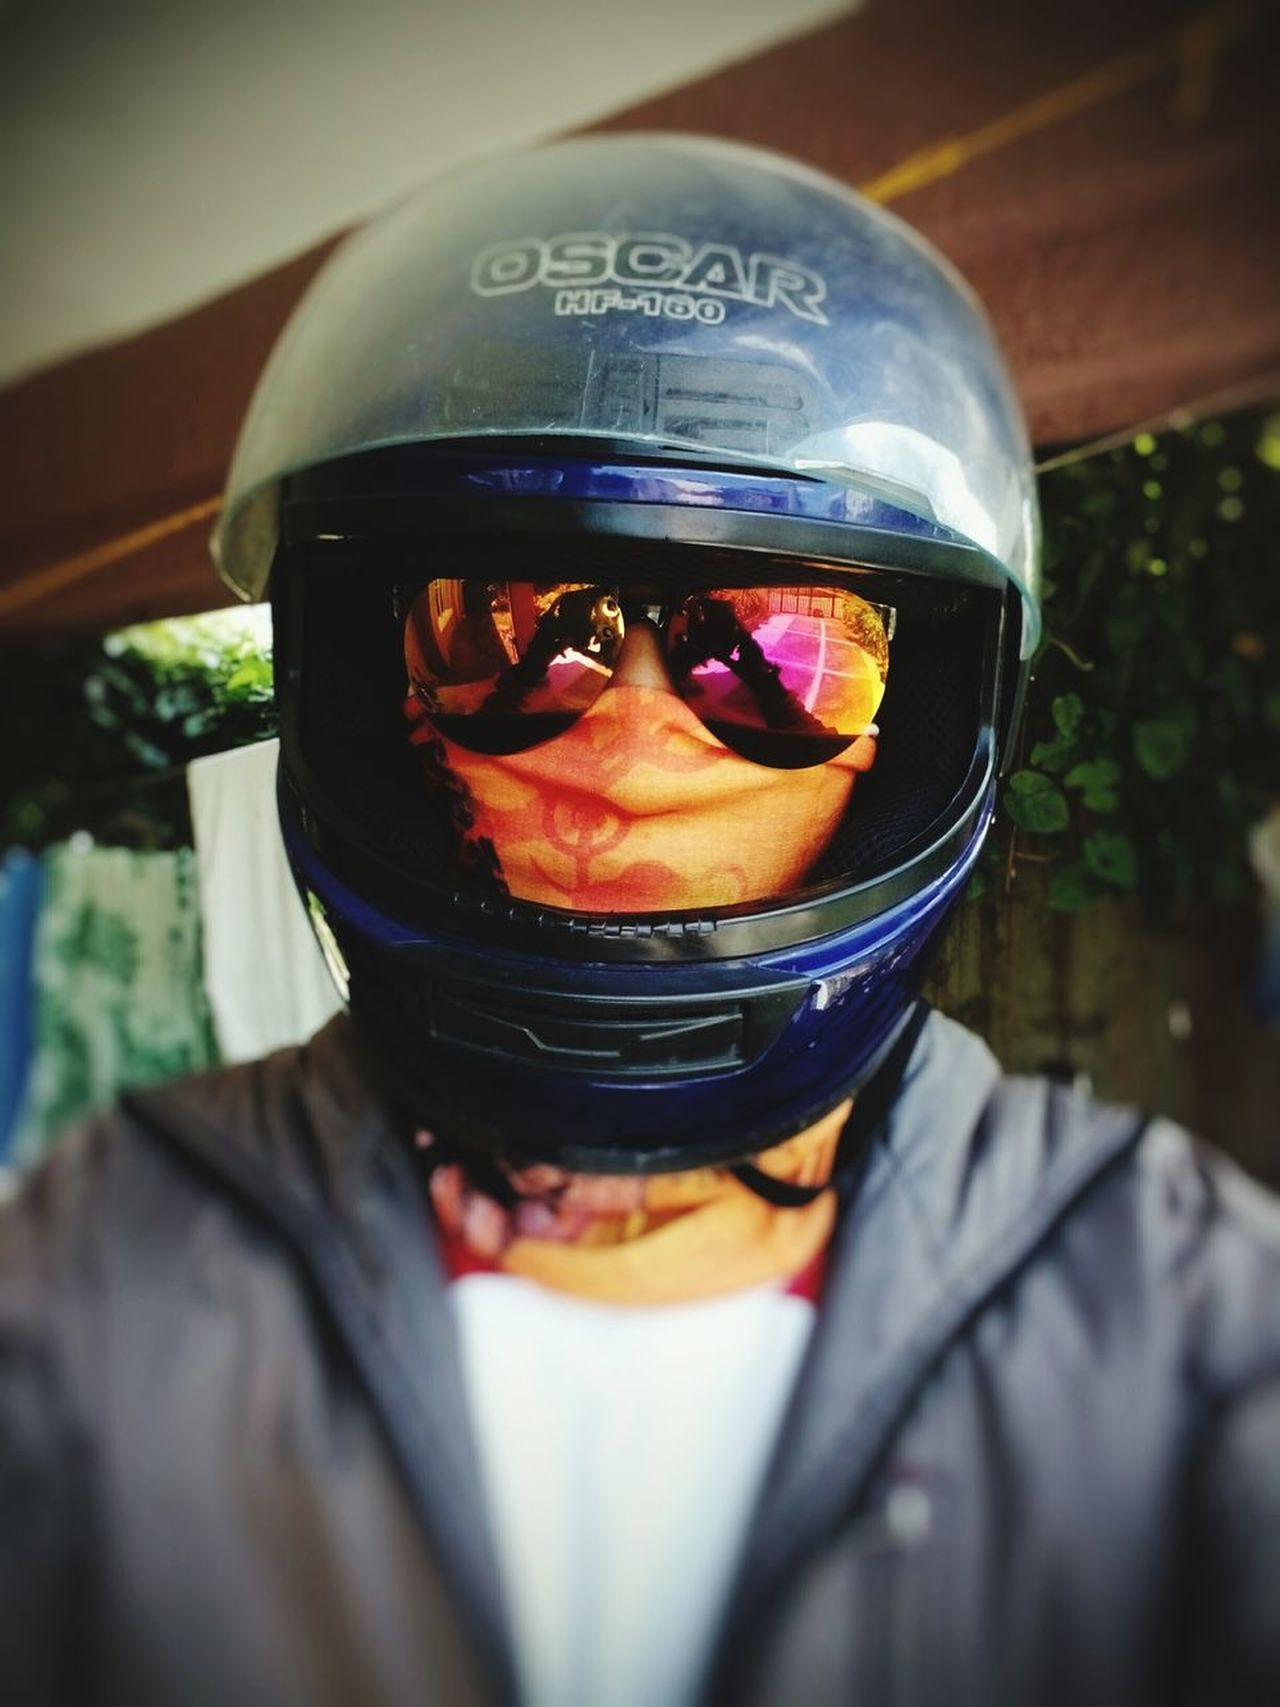 Just got home from school. LPUcavite Biker Motorcycle Blue Helmet Orange Chillin' Hot That's Me Mobilephotography